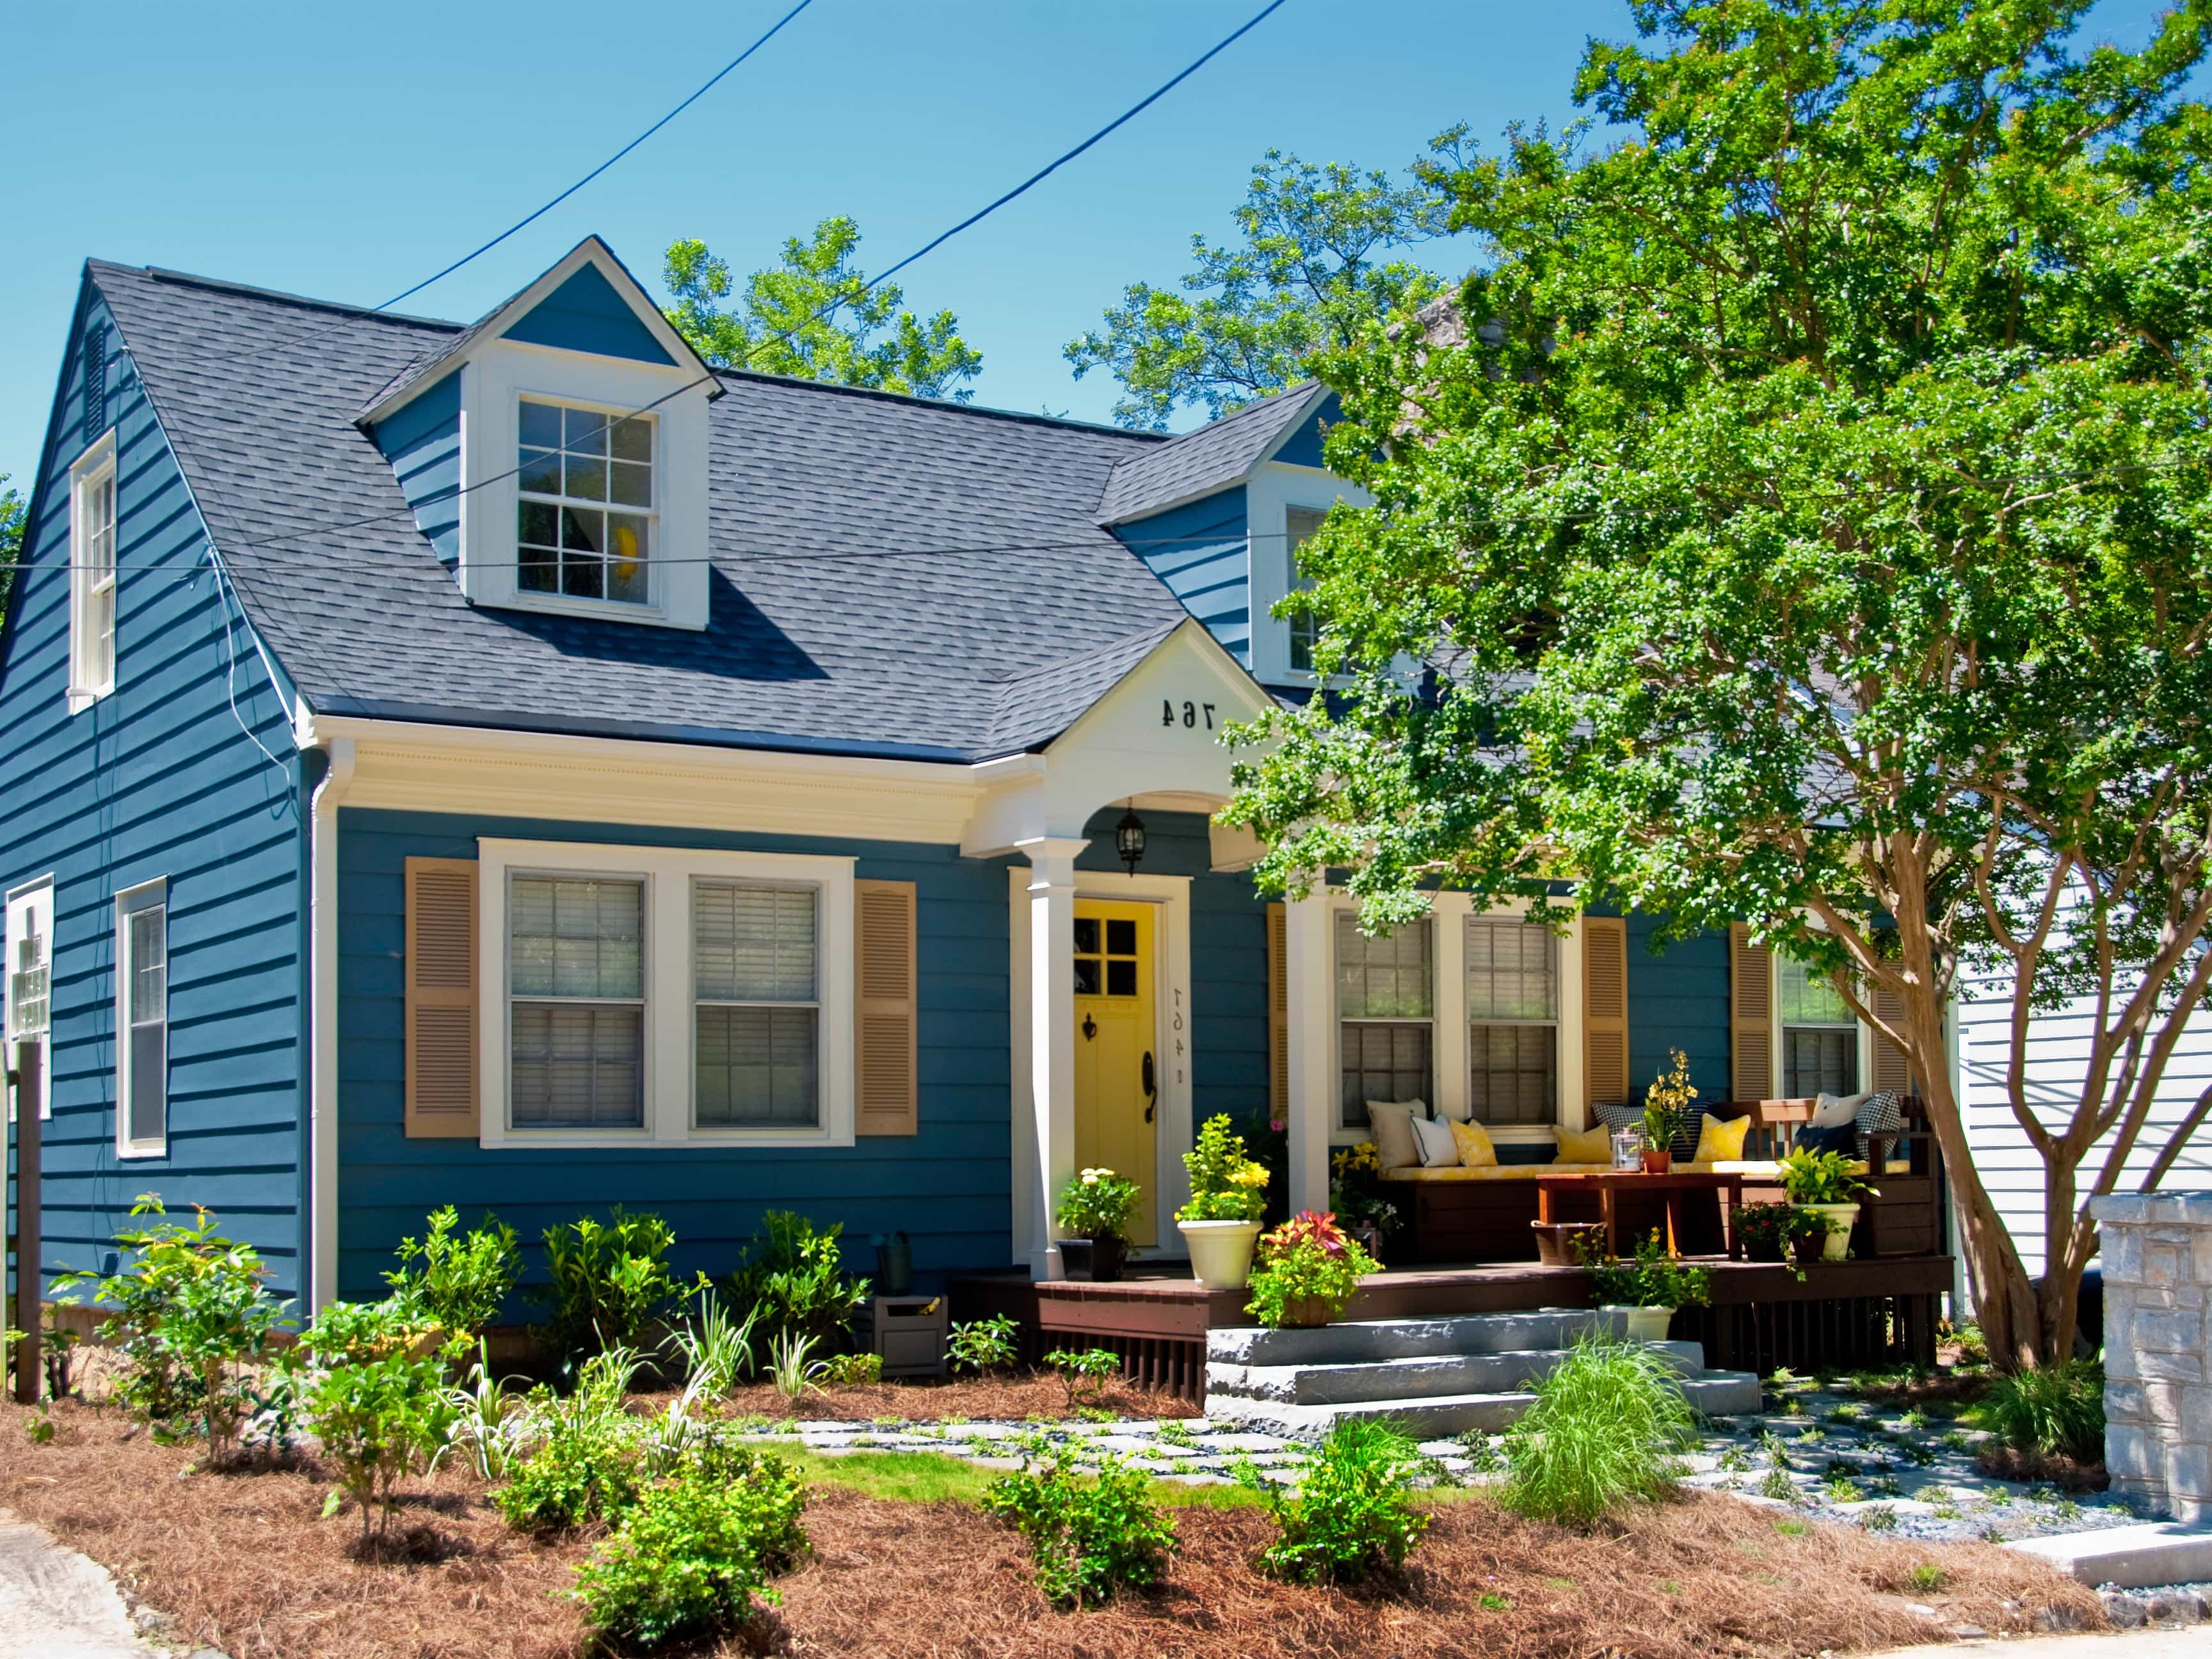 Featured Image of Bright Blue Cape Cod Home Has Curb Appeal